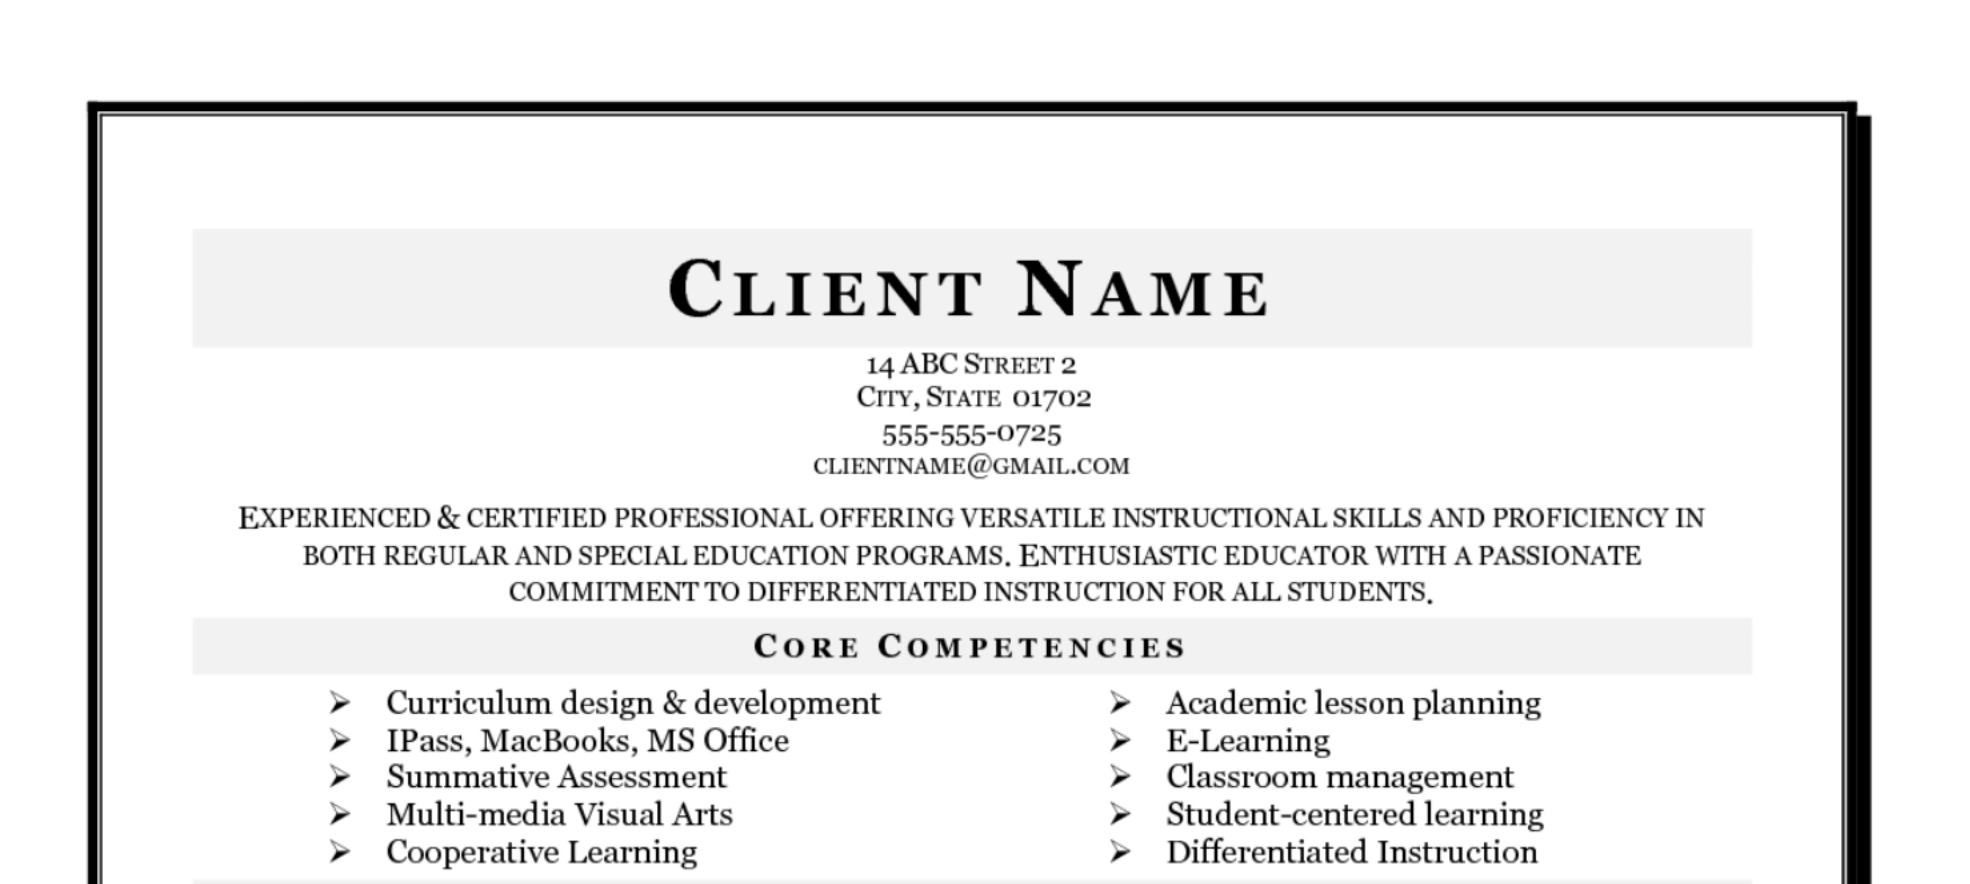 High Quality Hybrid Resume Samples Livmoore Tk Picture Of Heading For Resume Large Size  Heading For Resume